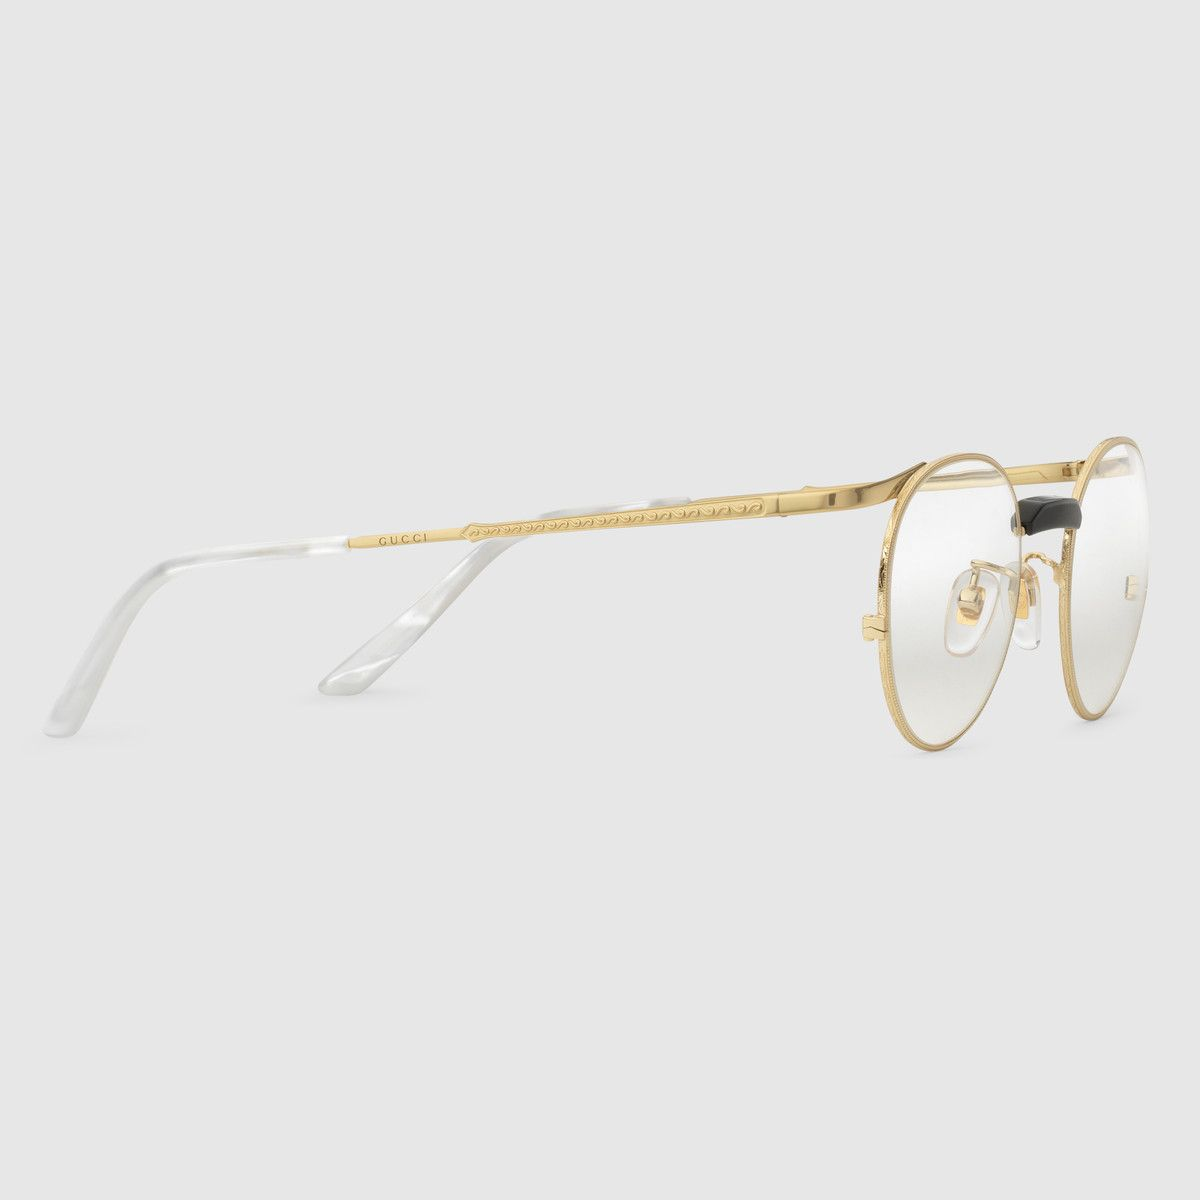 c4b114fd6 Gucci Round-frame metal glasses Detail 2 | Specs | Mens sunglasses ...